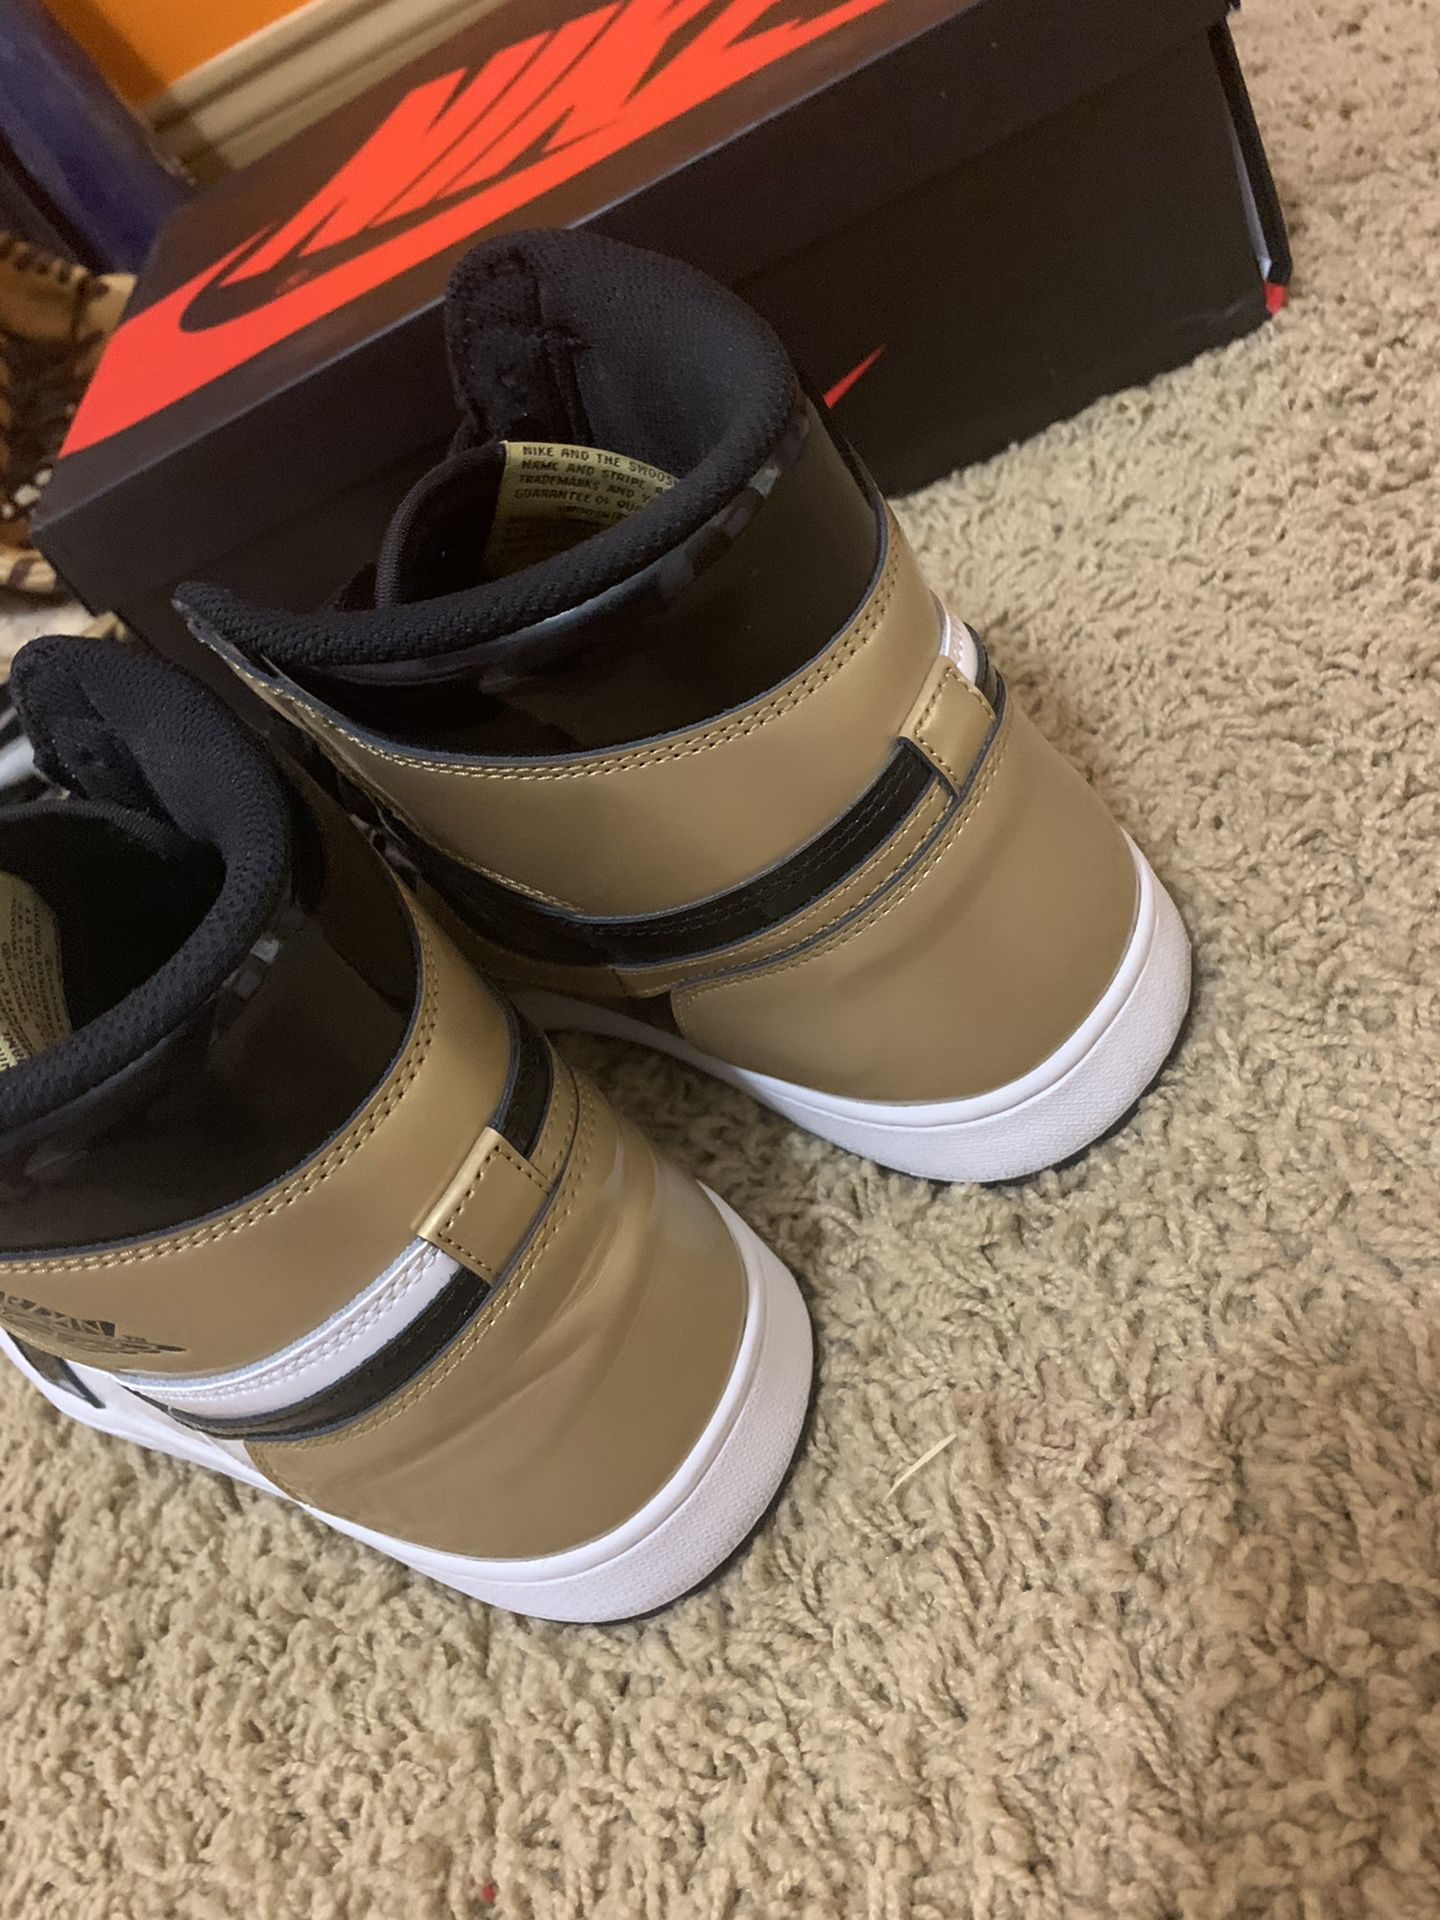 Gold Toe Jordan 1 High DS with box and laces